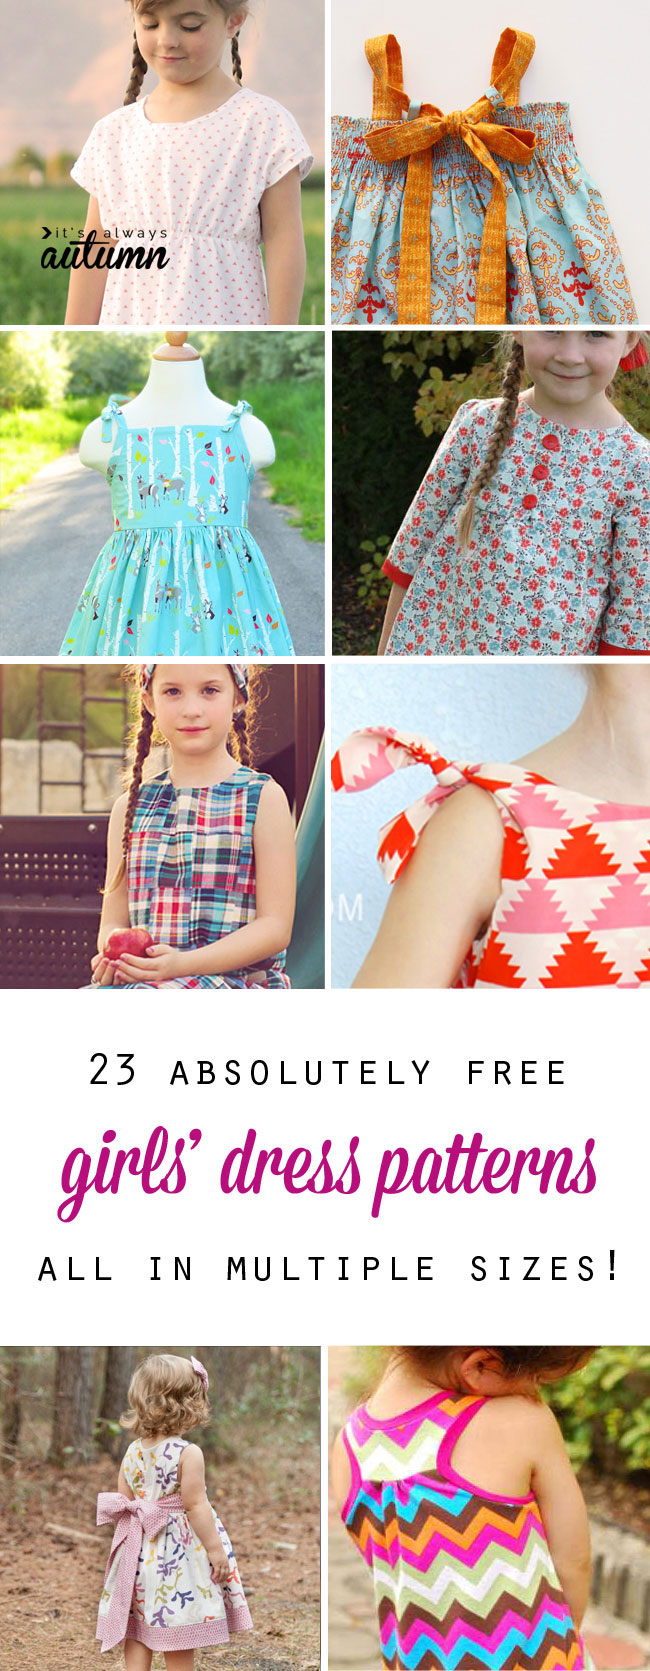 free girls dress patterns amp charity sewing its always